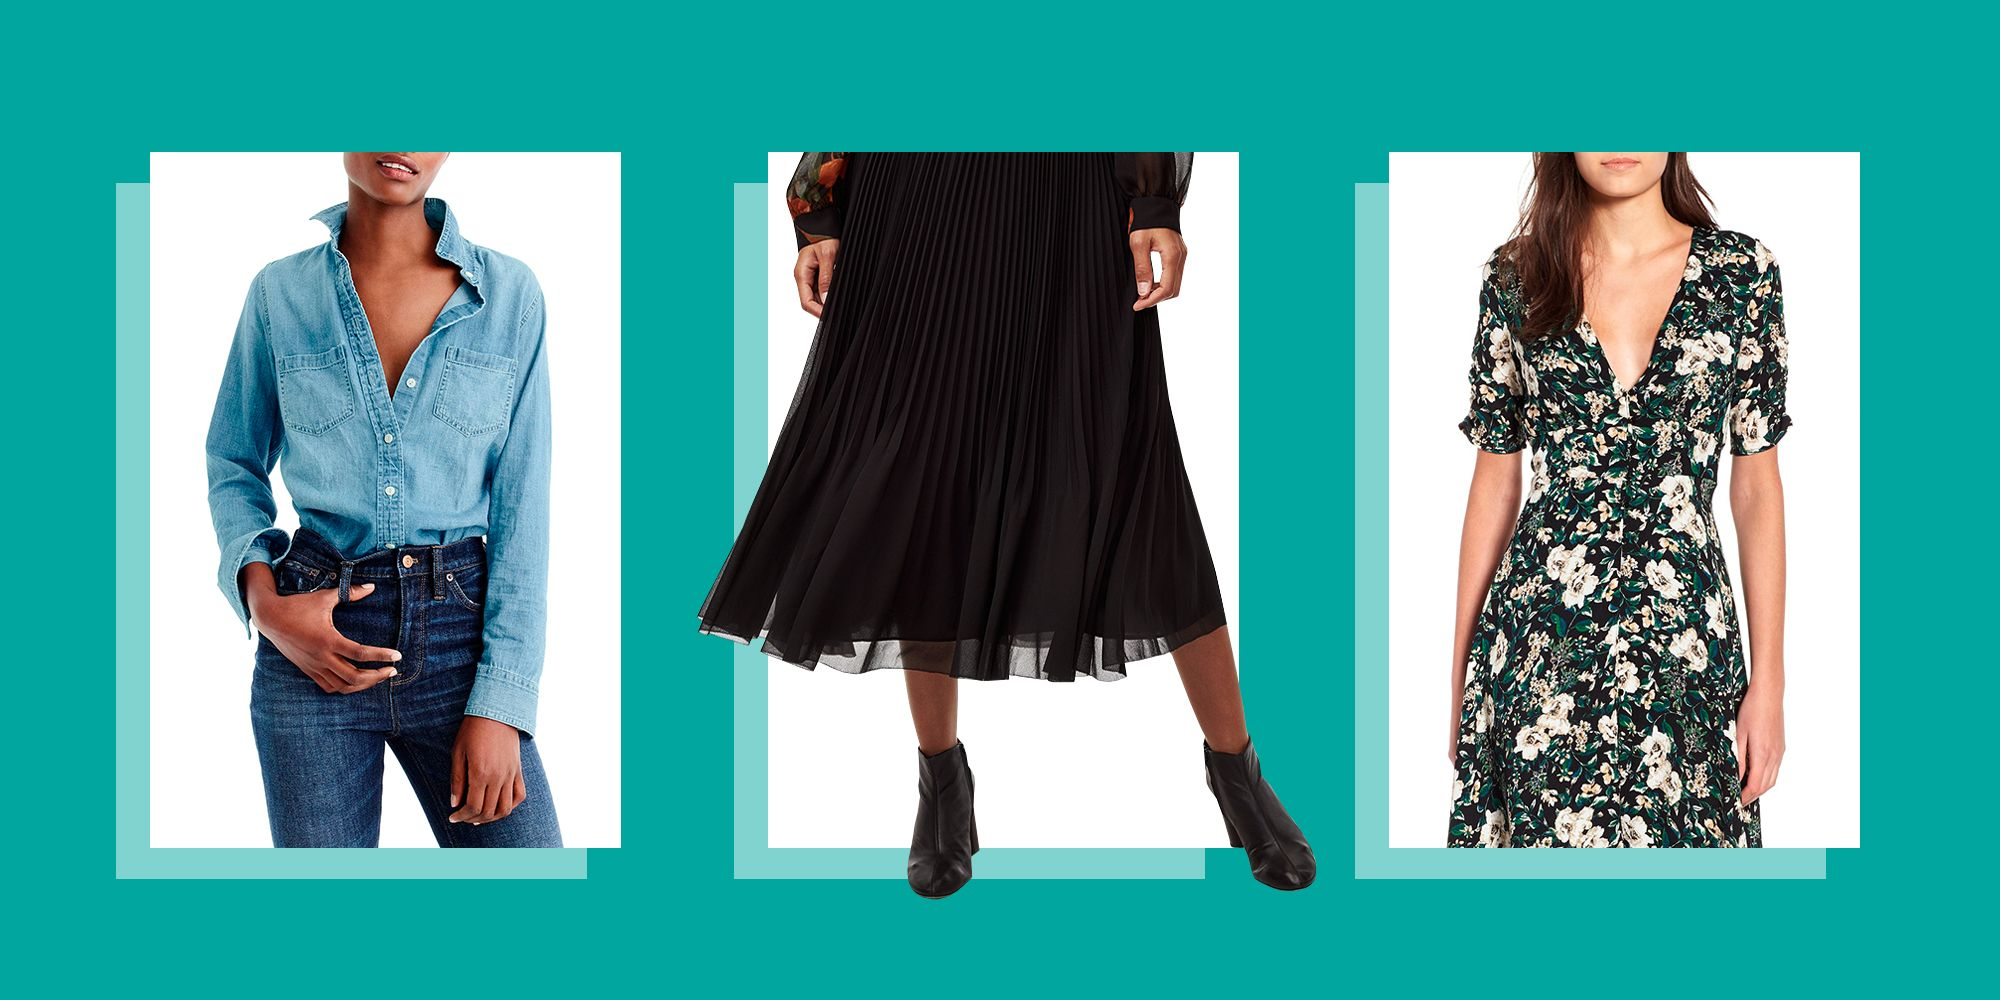 14 Wardrobe Pieces That Ease the Transition From Summer to Fall